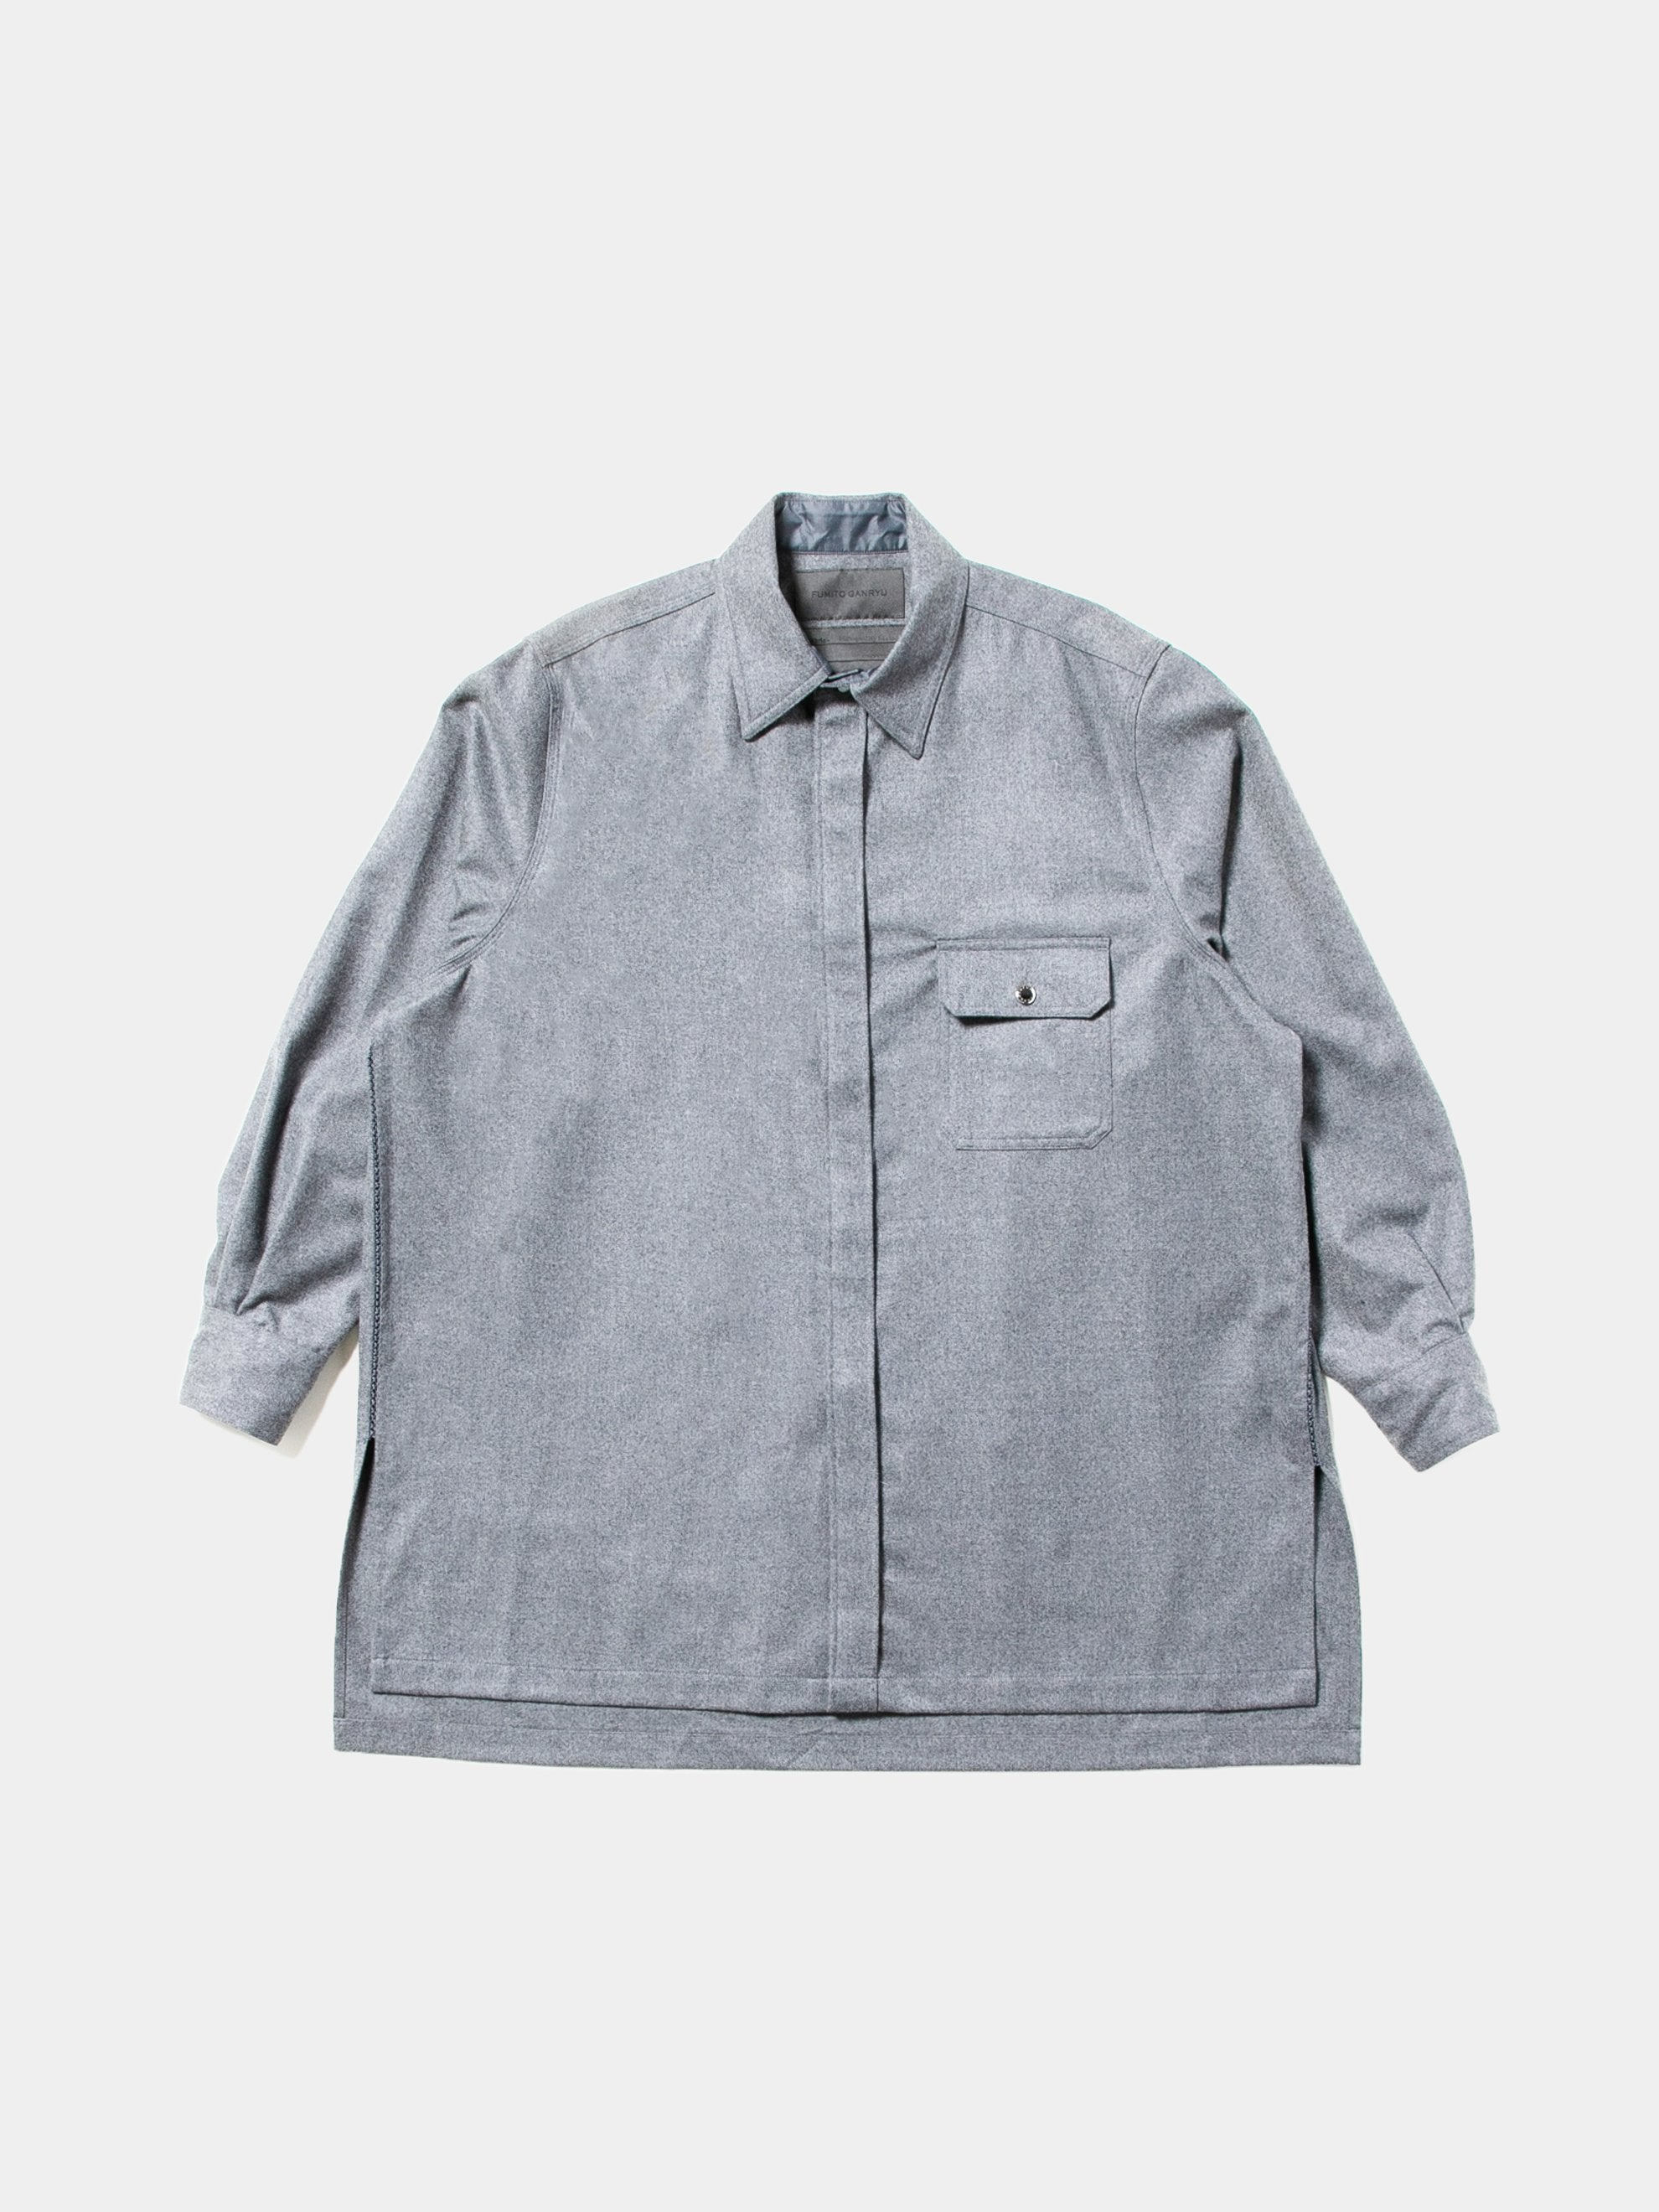 Top Gray Elongated Wool Pocket Shirt 1